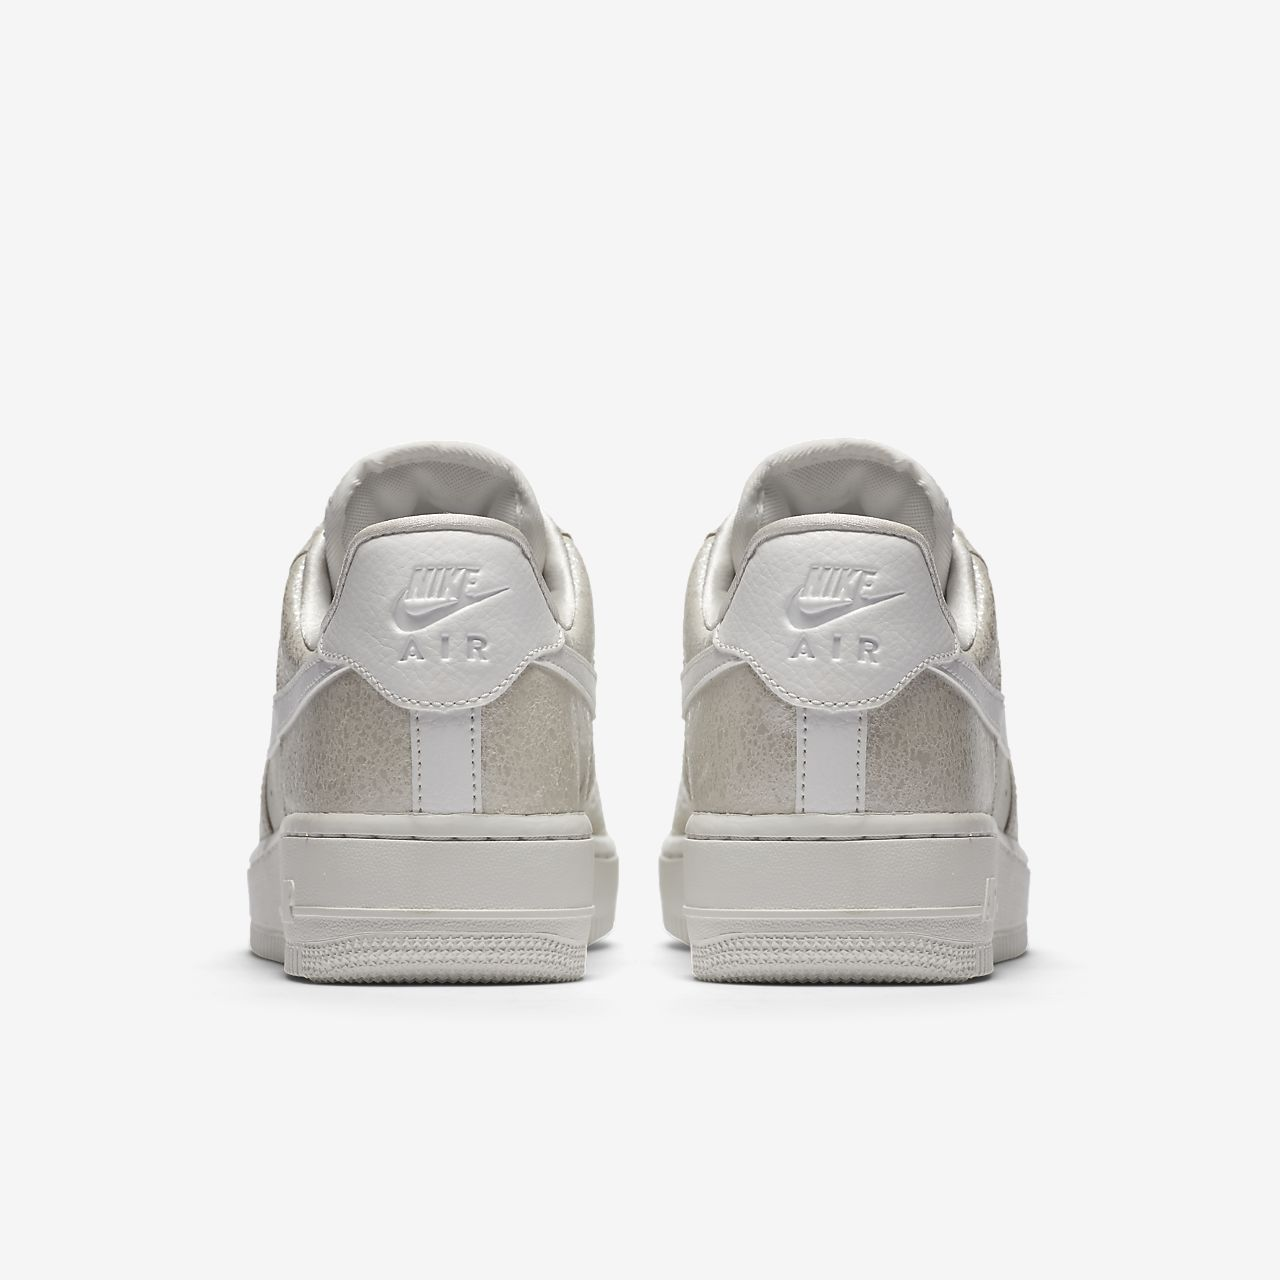 Nike Air Force Force Force 1 '07 Low Premium Damenschuh Sparen Sie über 50%-AR3079DS    | Toy Story  d1f947